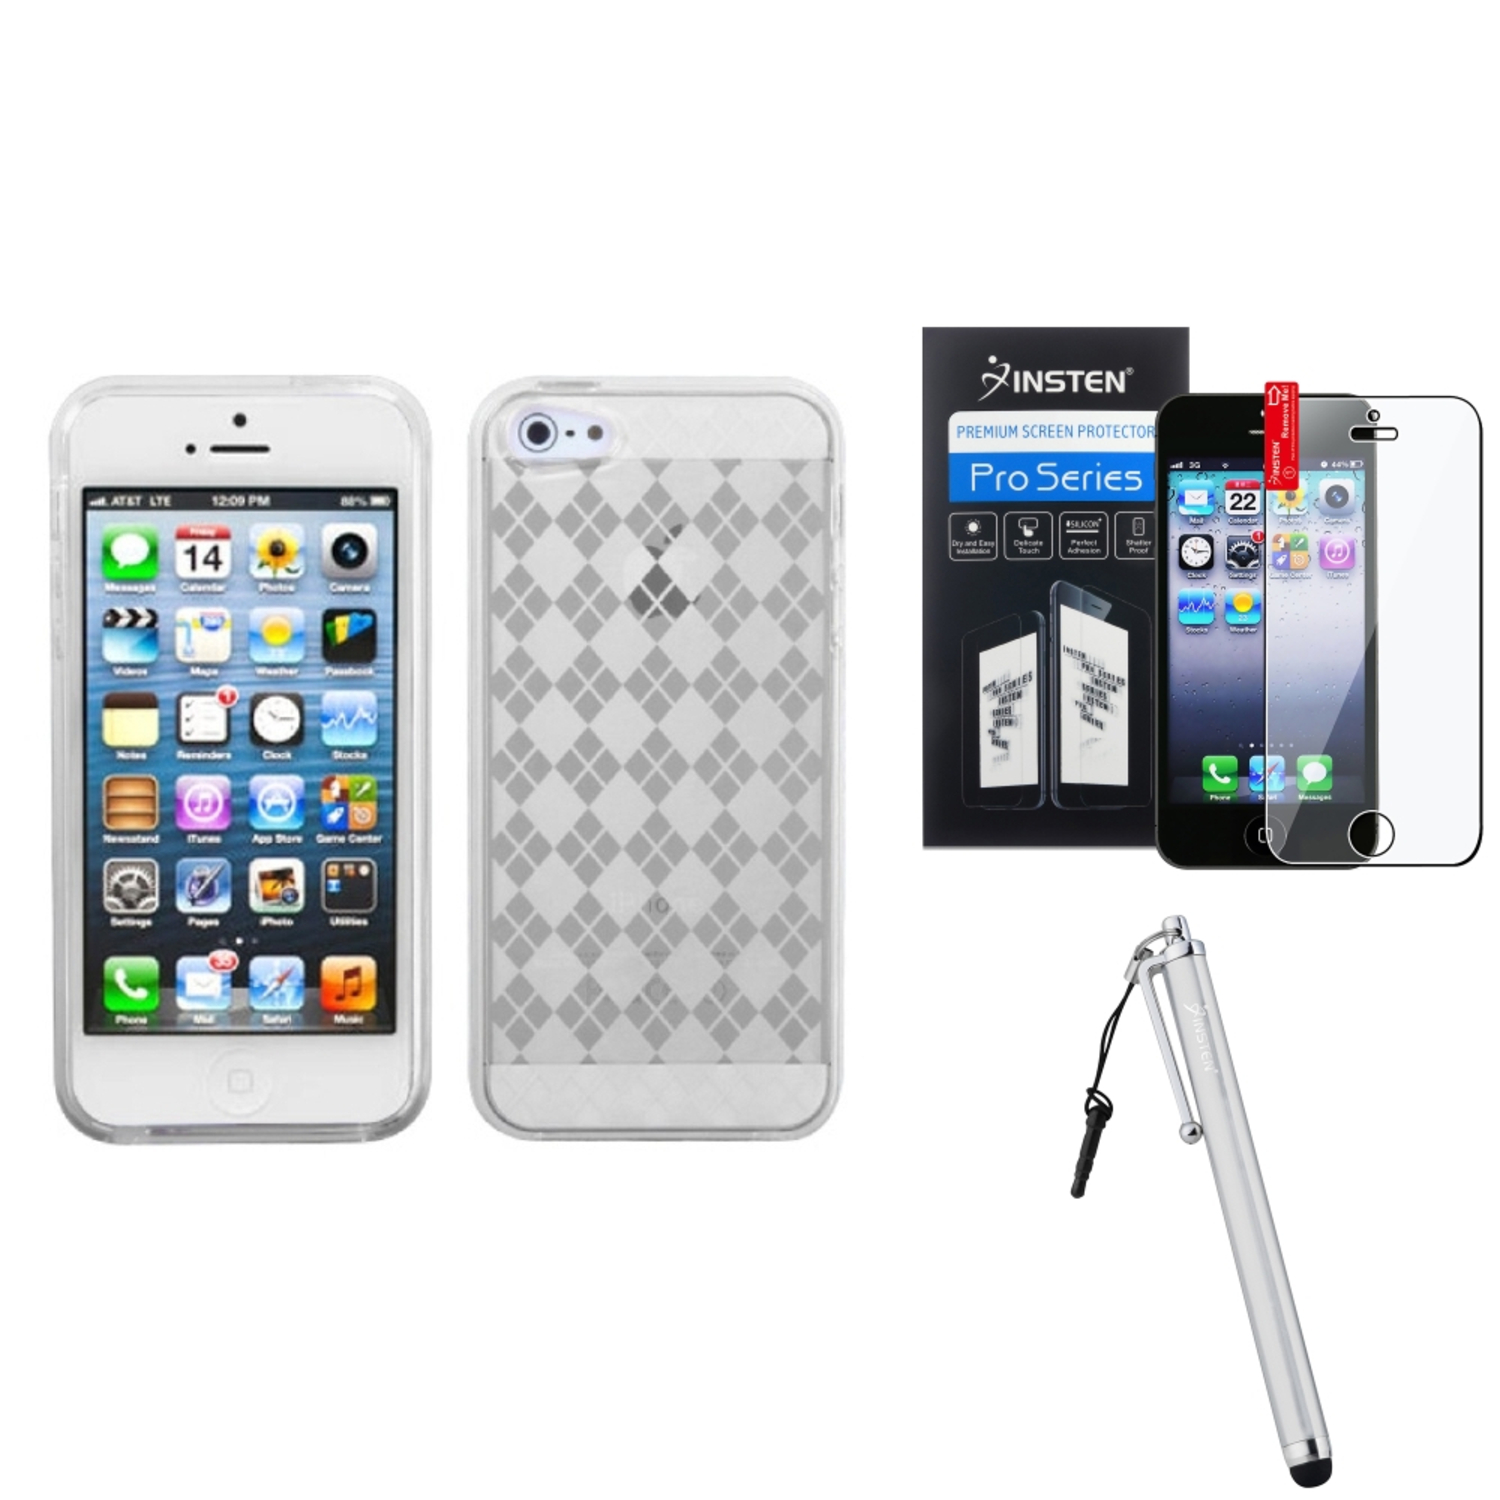 Insten T-Clear Argyle Candy Skin Case For iPhone 5 / 5s   Film   Stylus Pen